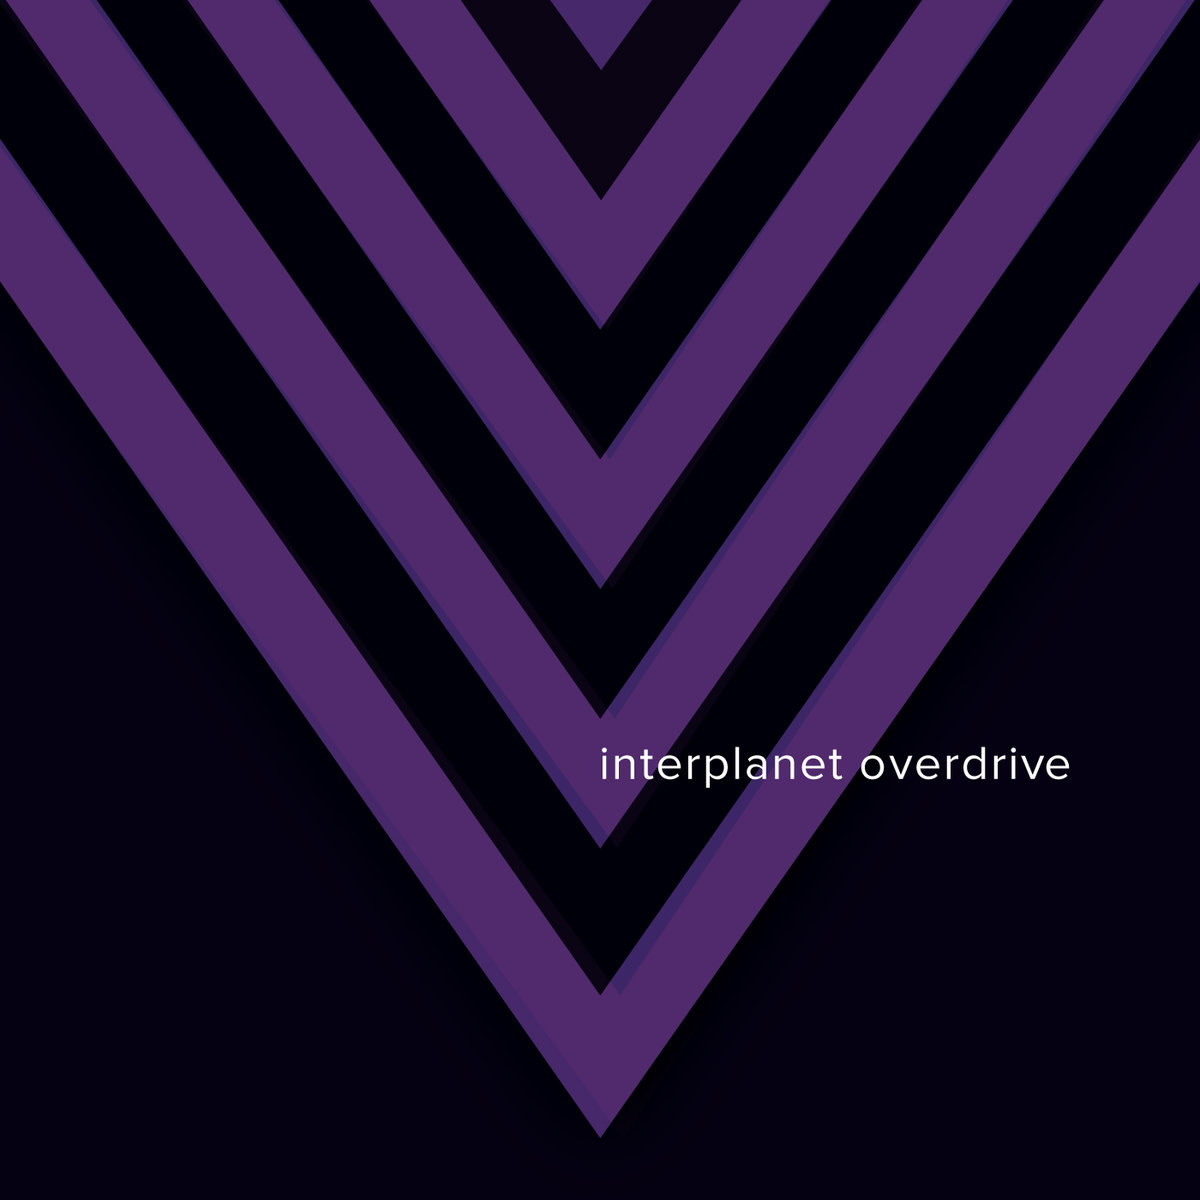 Sinoptik - Interplanet Overdrive